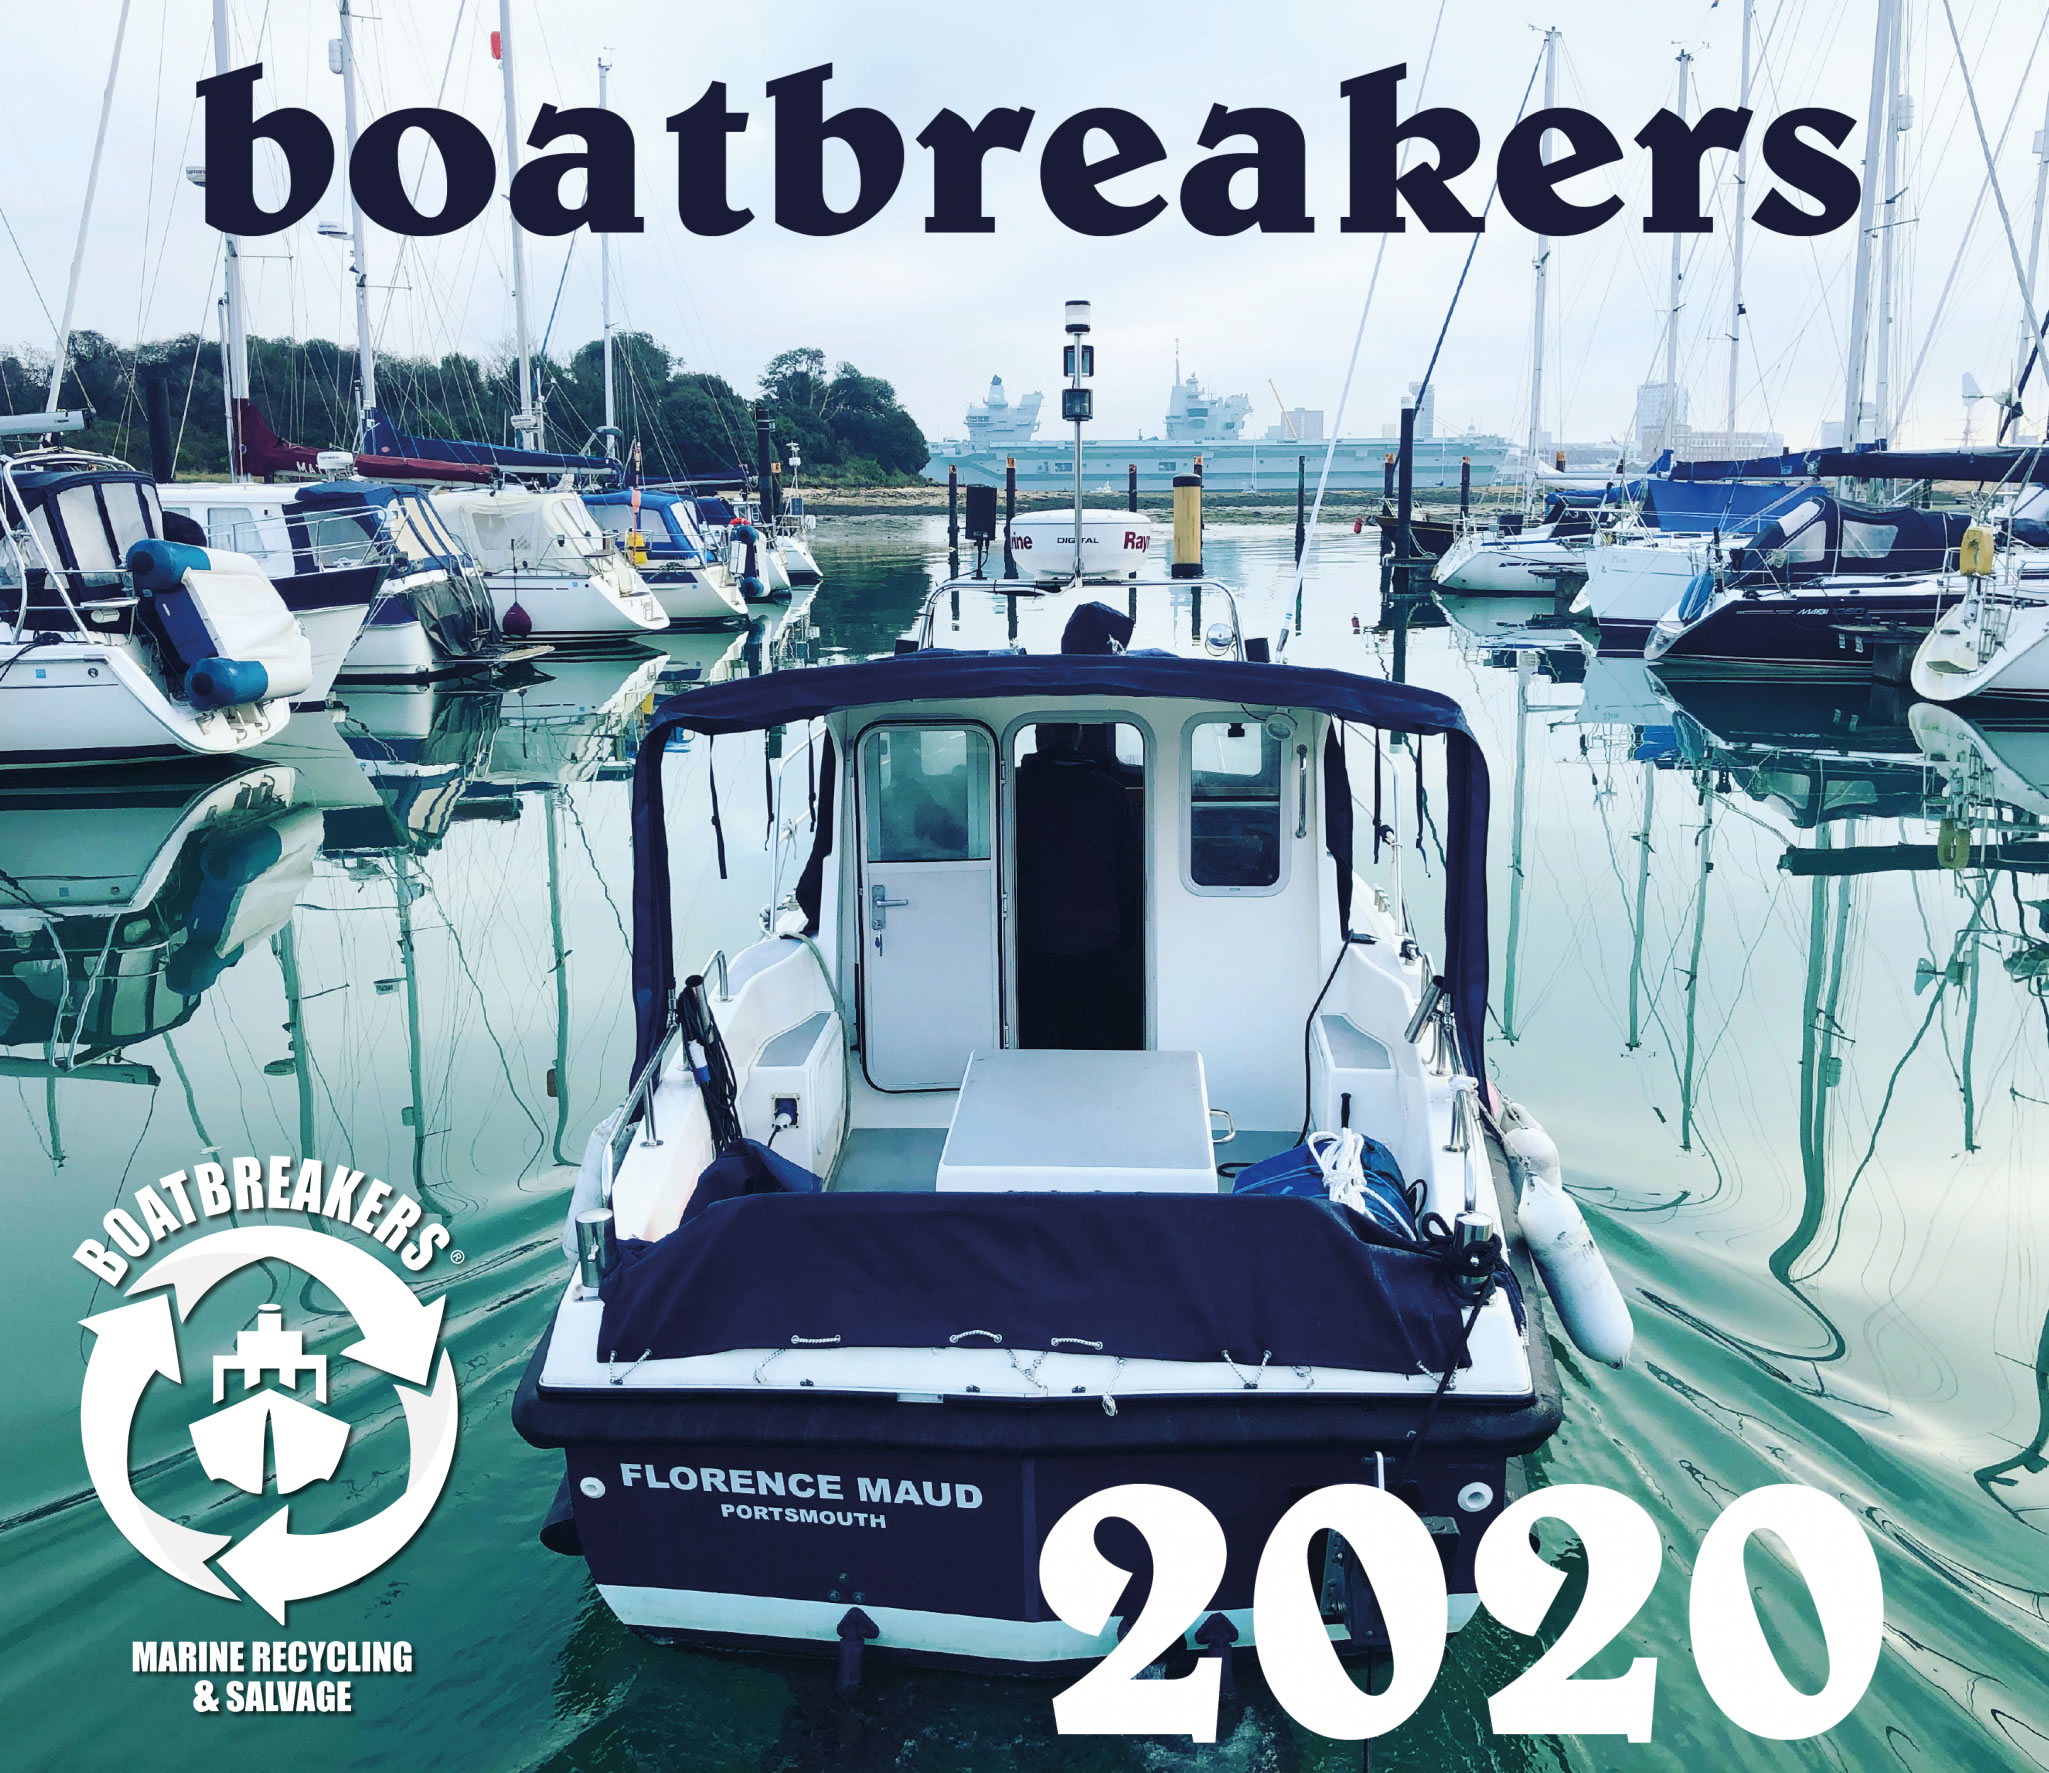 2020 Vision For Boatbreakers